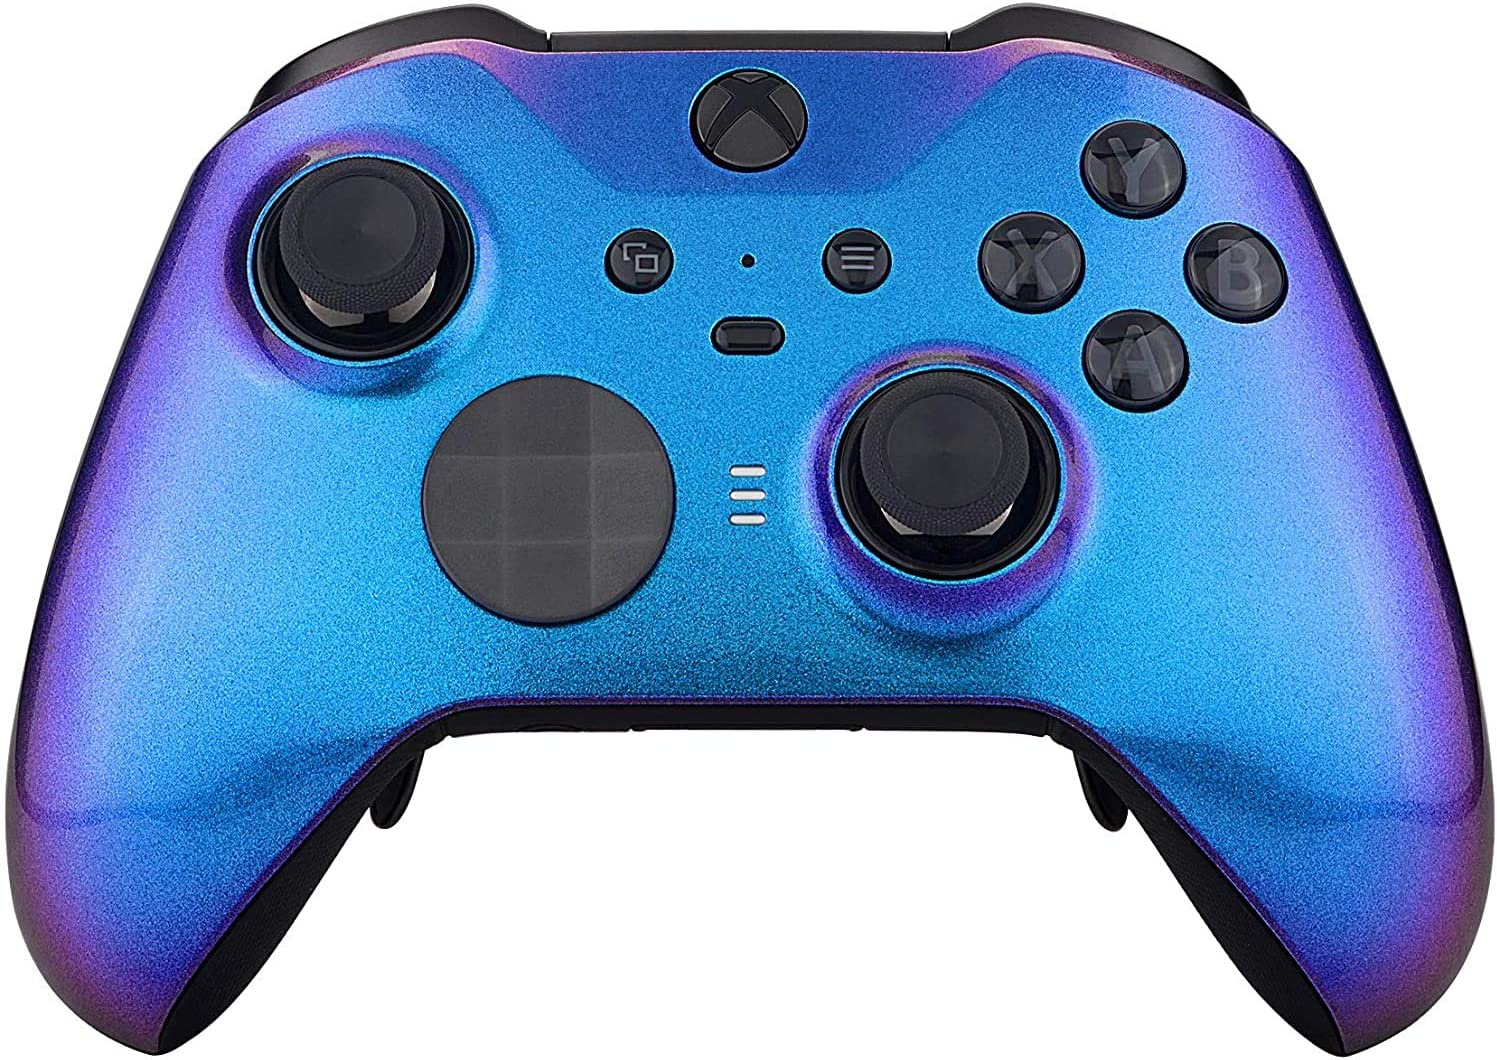 Elite Series 2 Controller Modded - Custom 7 Watts Pro Rapid Fire Mod - for Xbox One Series X S Wireless & Wired PC Gaming - Comet Strike